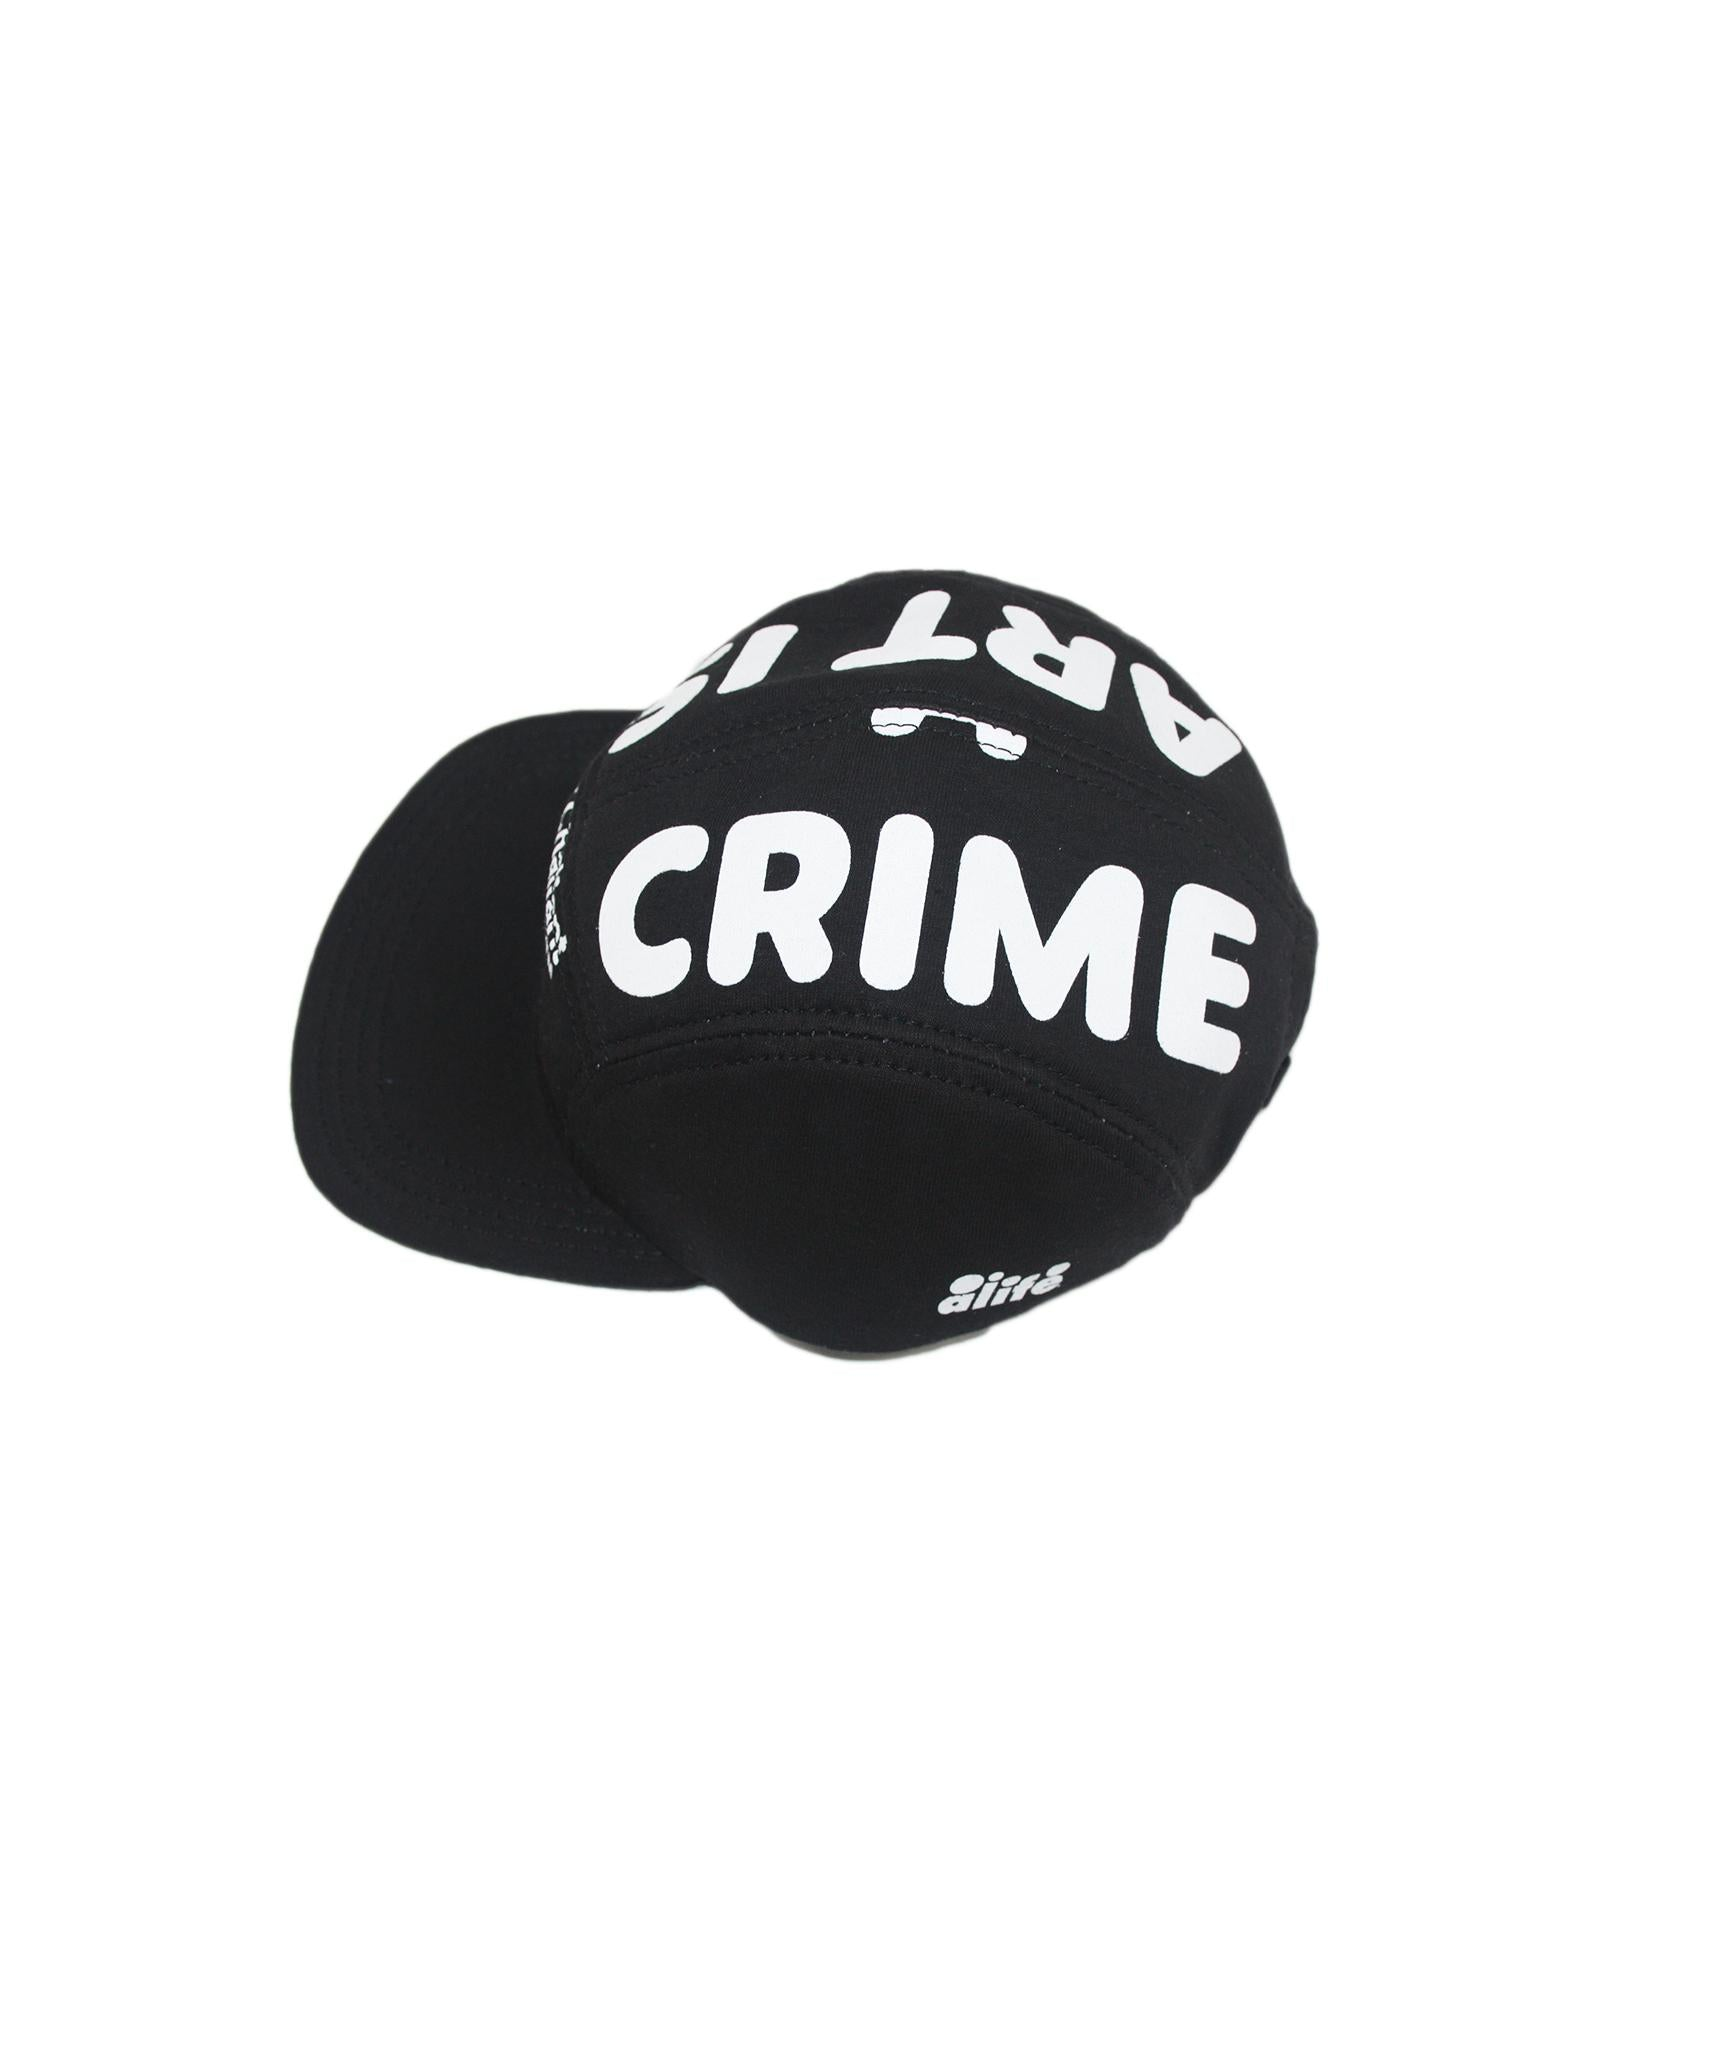 Alife Upcycle Hat - Art Is Not A Crime - Black/White